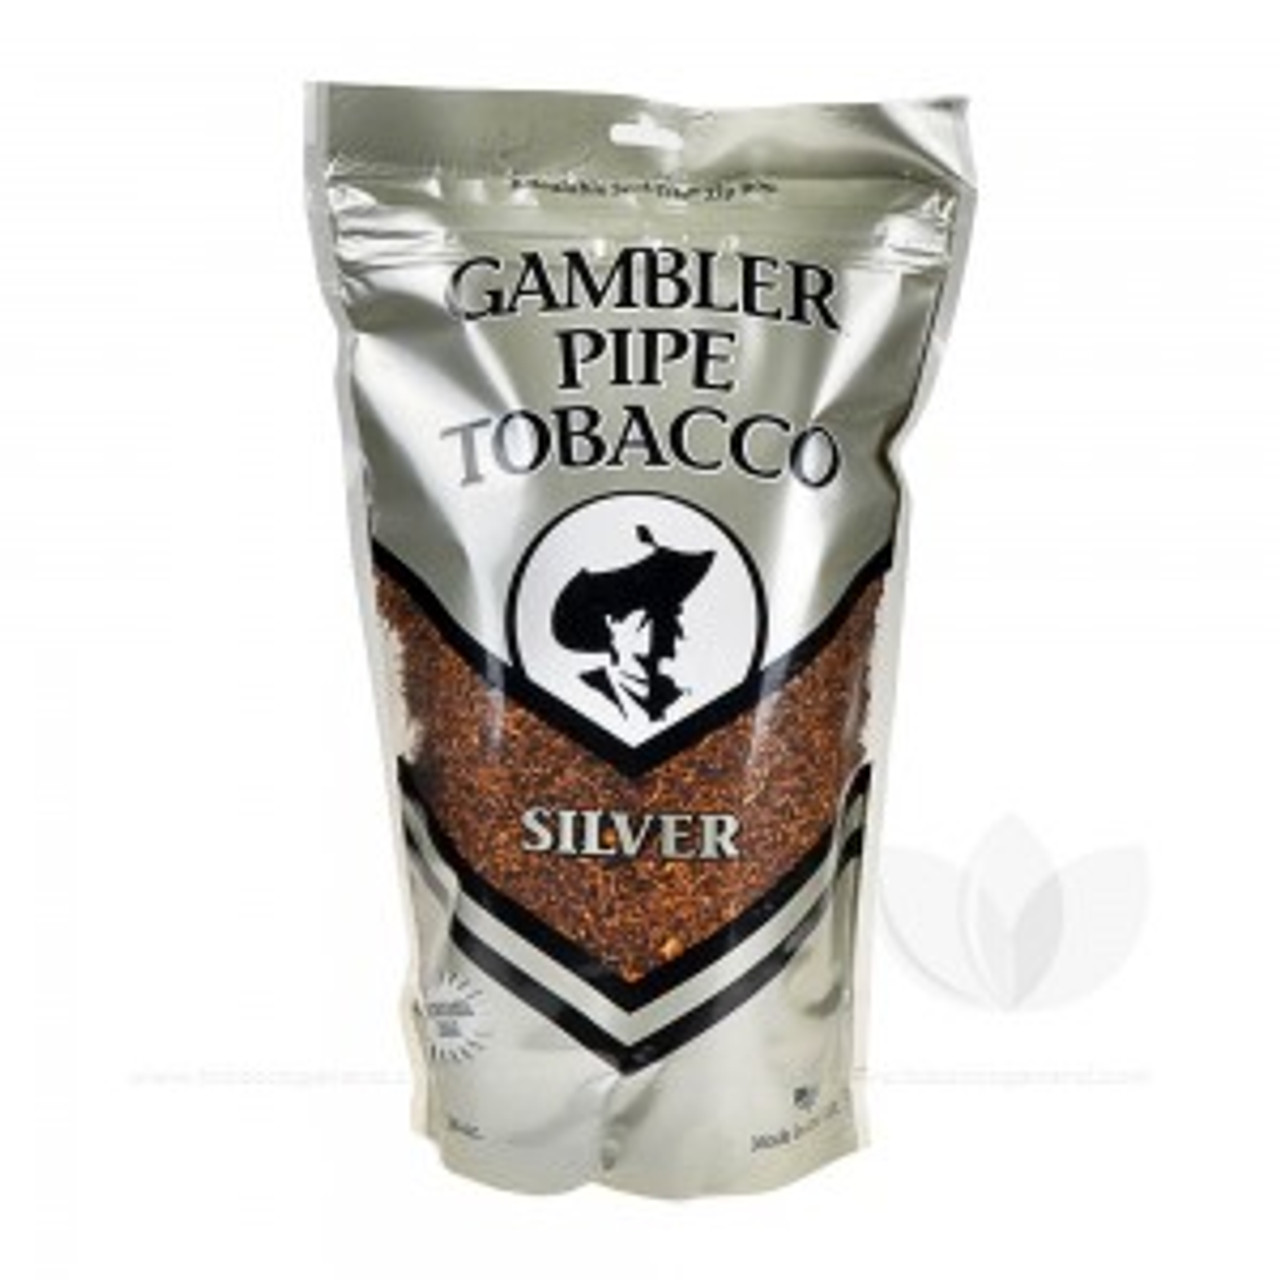 Gambler Silver Pipe Tobacco | 16 Oz. Bag